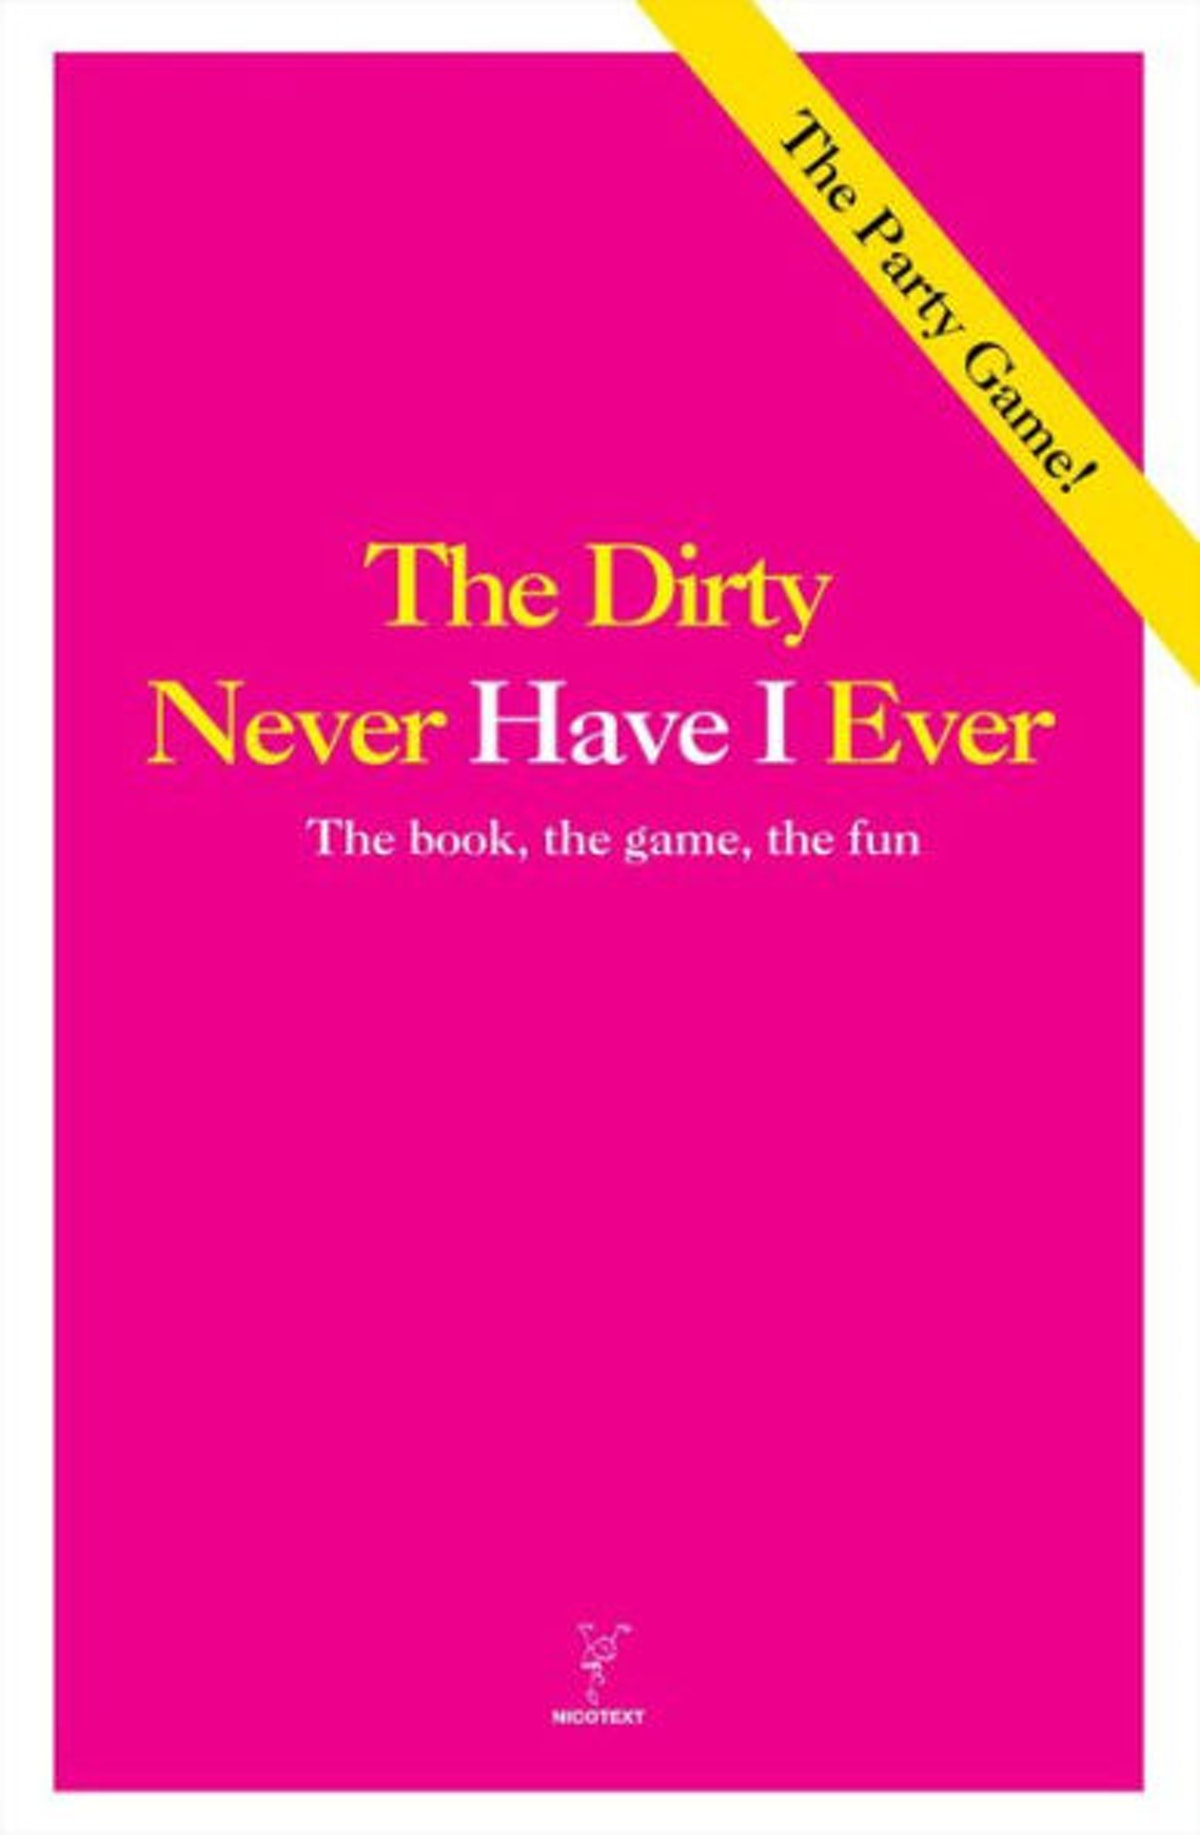 The Dirty Never Have I Ever